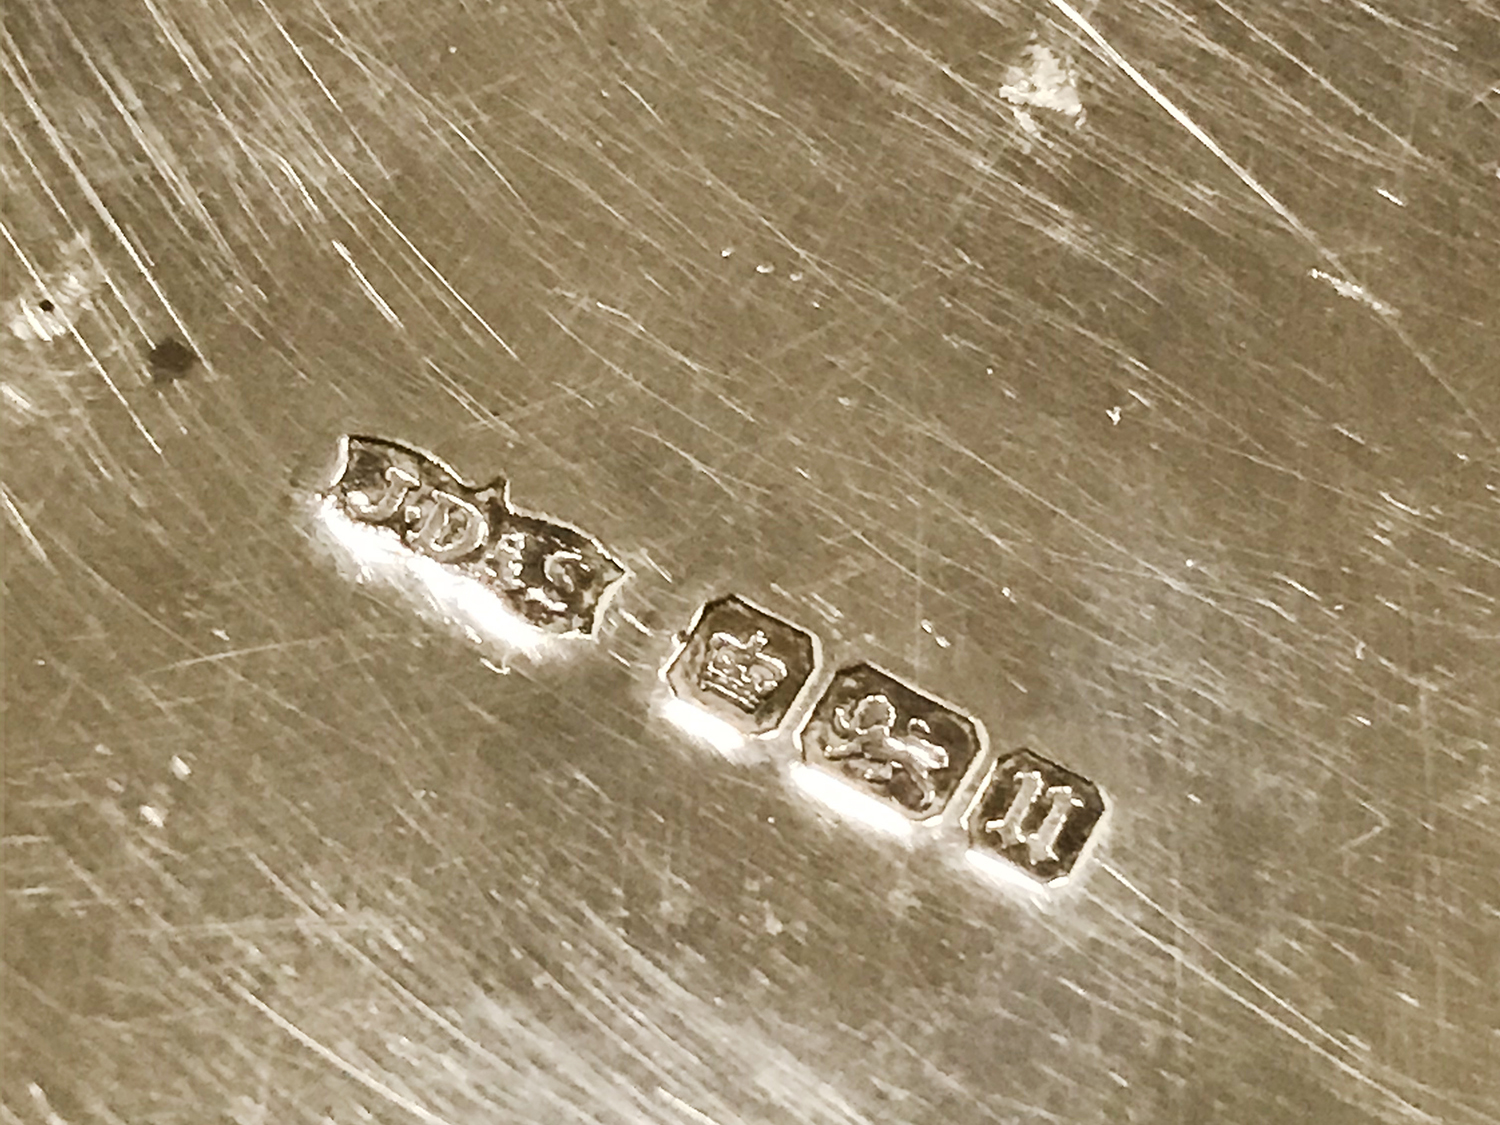 HM SILVER FRETWORK BOWL WITH 5 HM SILVER NAPKIN RINGS - Image 4 of 8